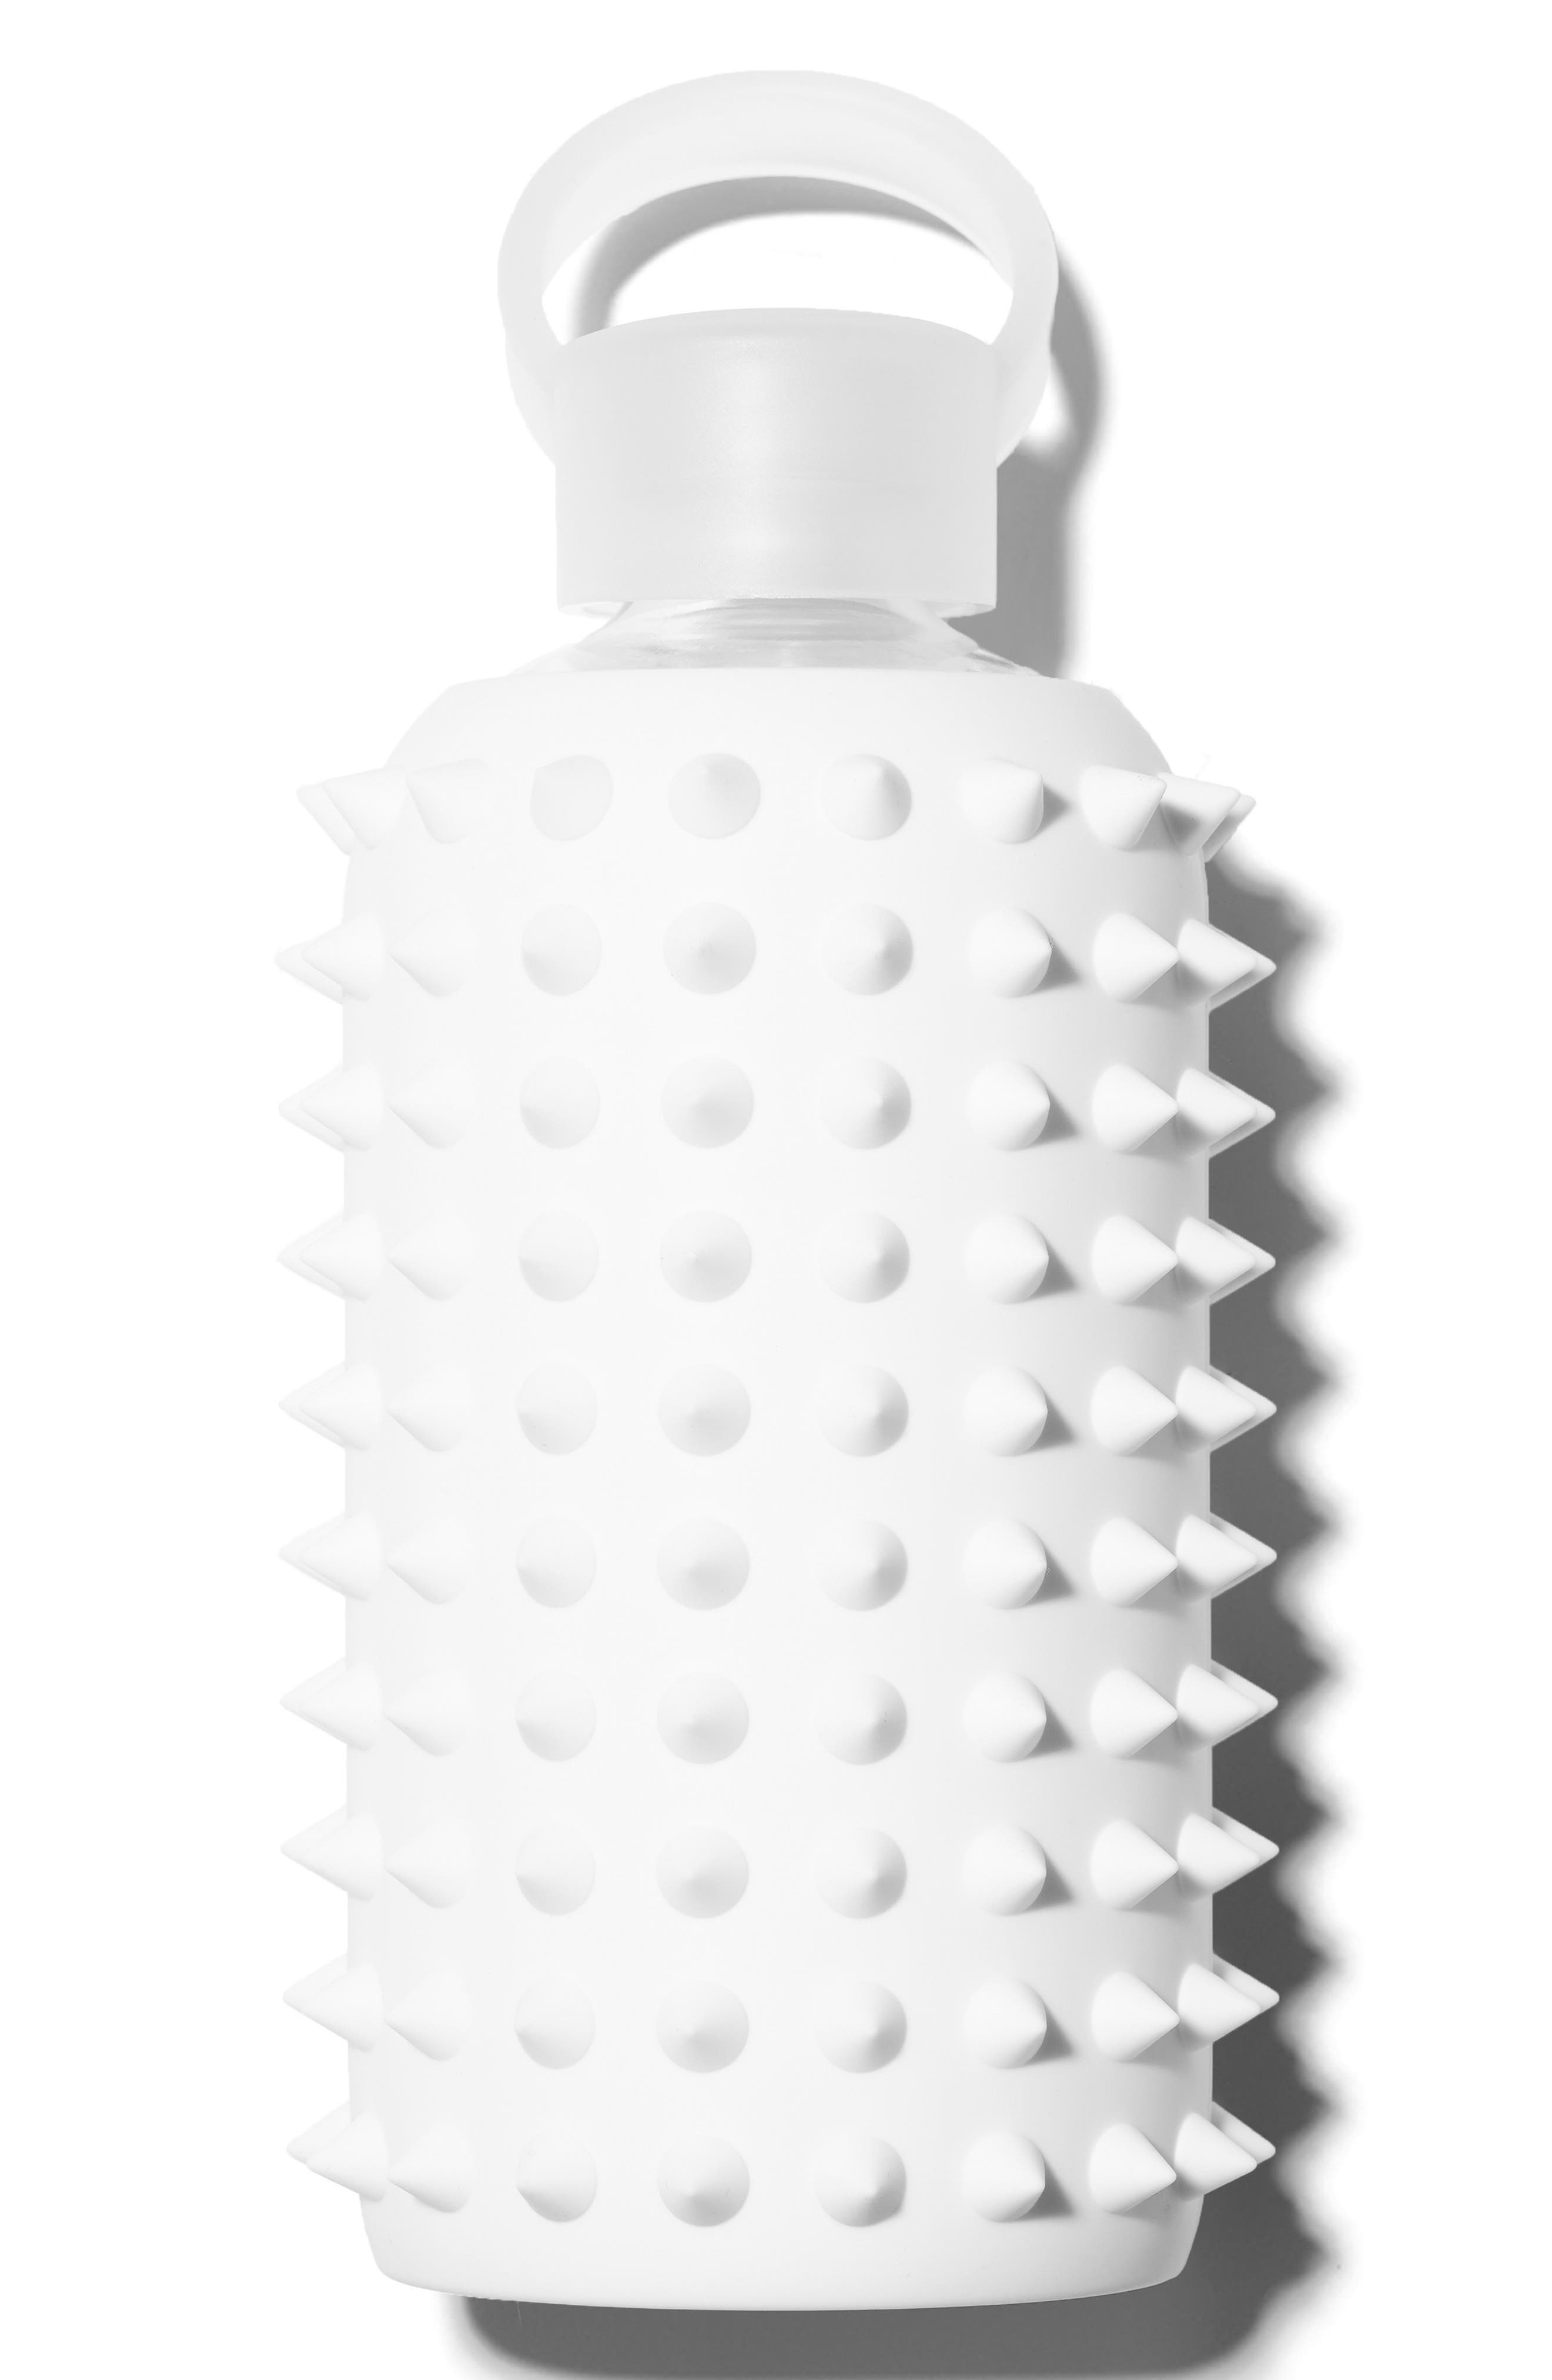 Spiked 16-Ounce Silicone Glass Water Bottle,                             Main thumbnail 1, color,                             100